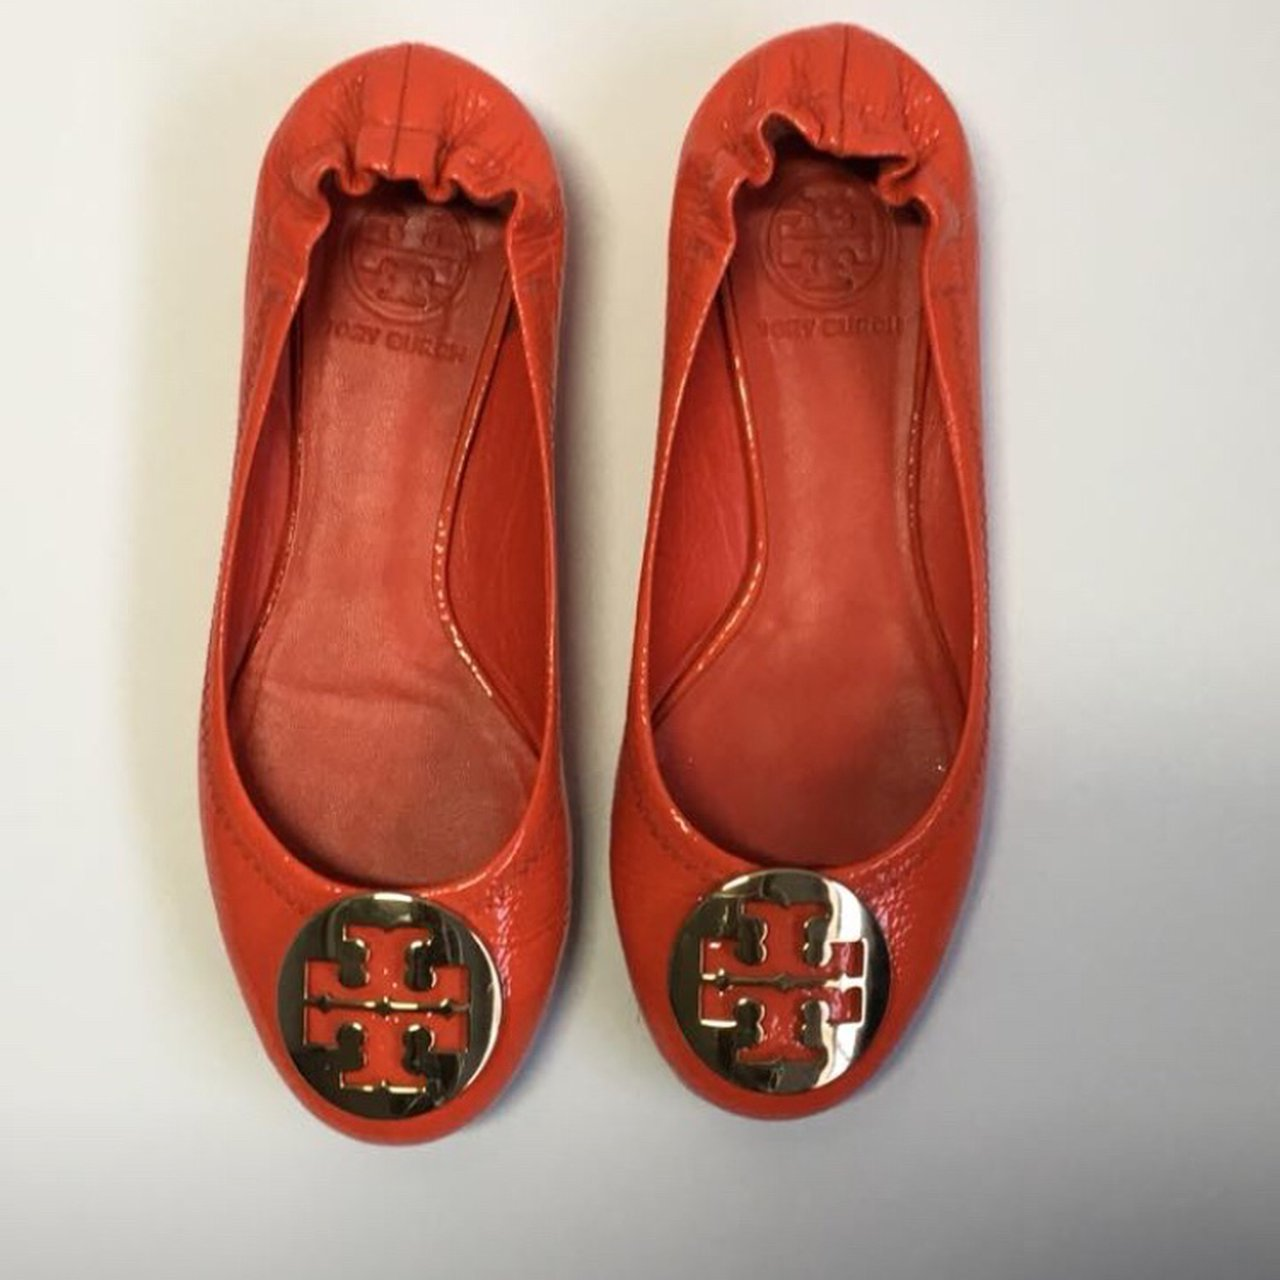 4b9aa2ab6439 Authentic Tory Burch Reva Ballet Flats. - Only worn once and - Depop